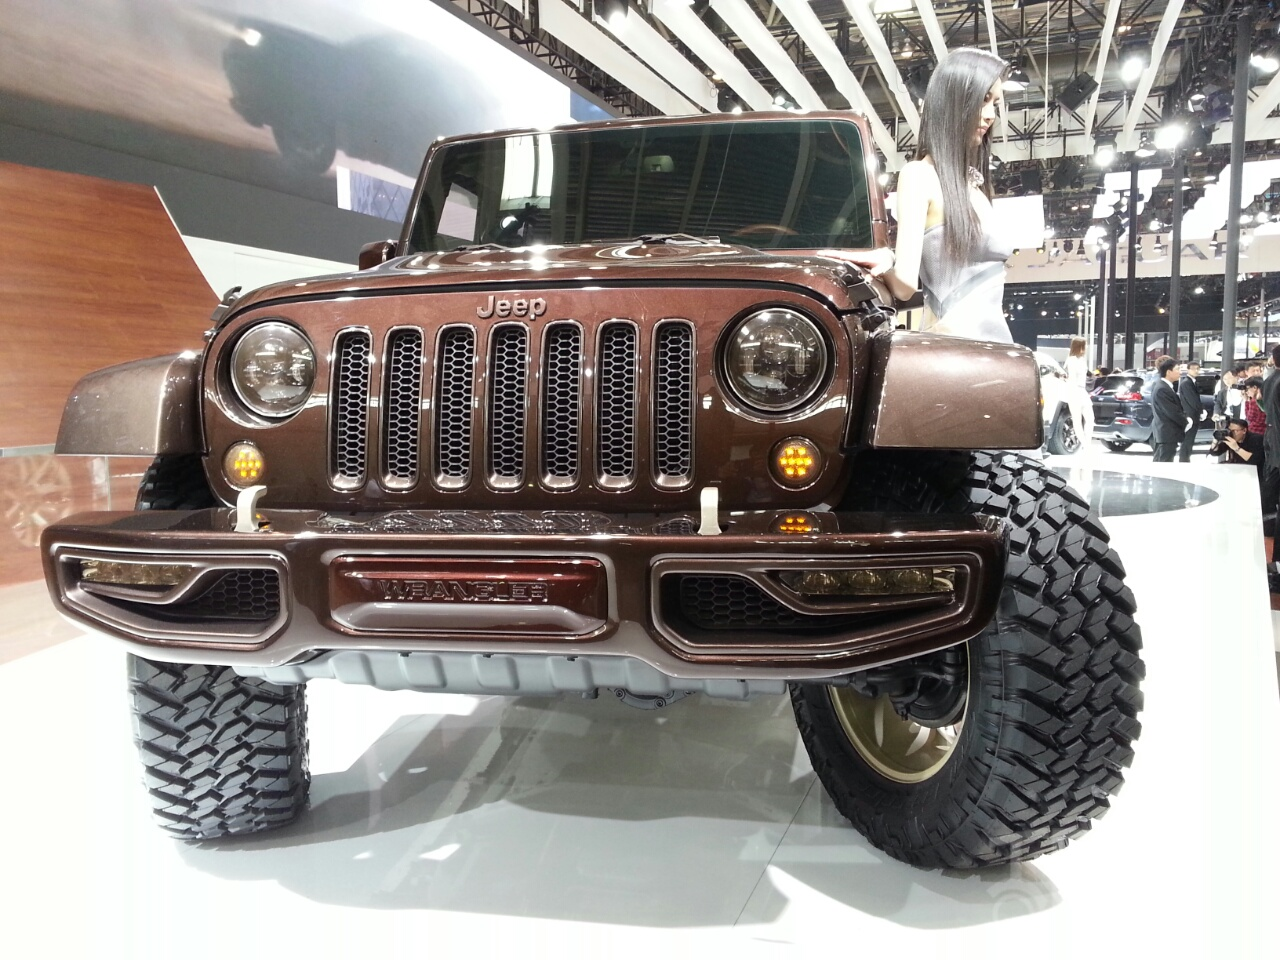 Jeep Wrangler Apollo Edition at 2014 Beijing Auto Show - front